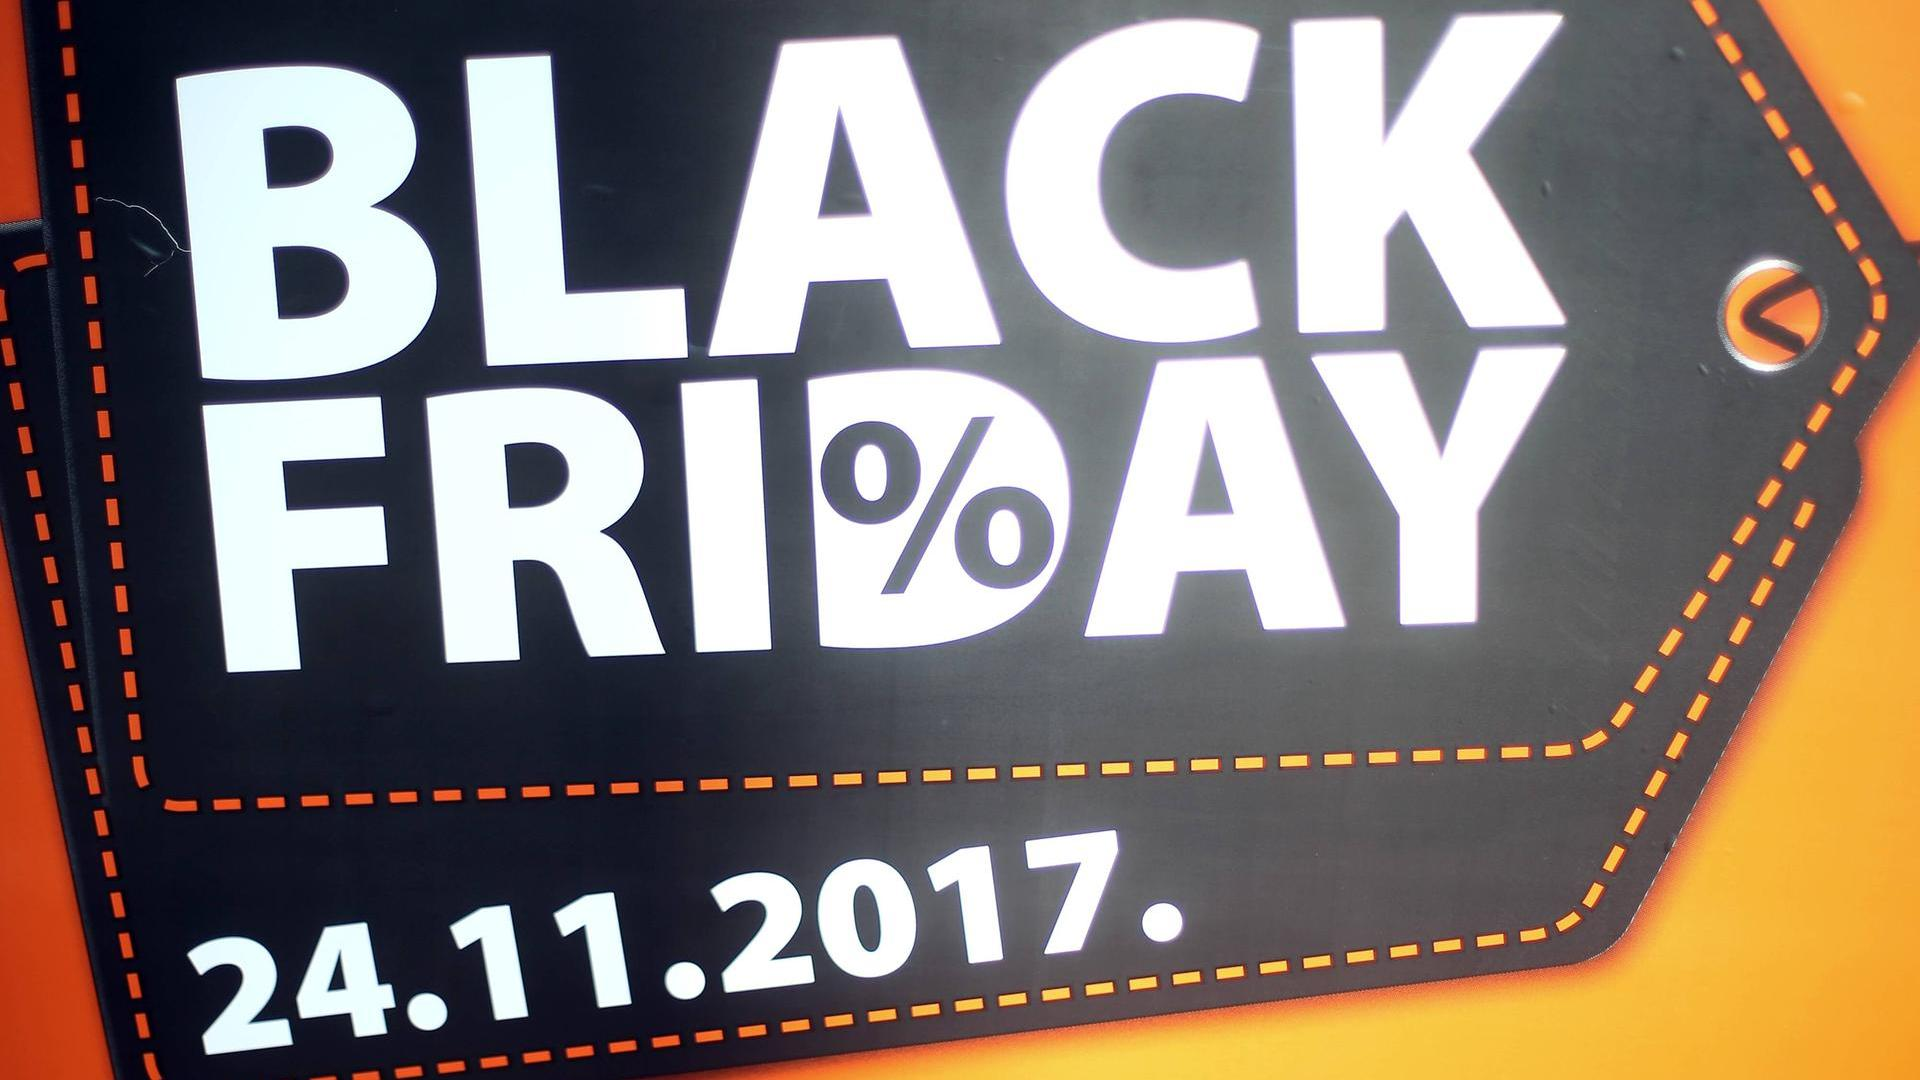 Black Friday Angebot Black Friday And Cyber Monday 2017 Tipps Und Angebote Für